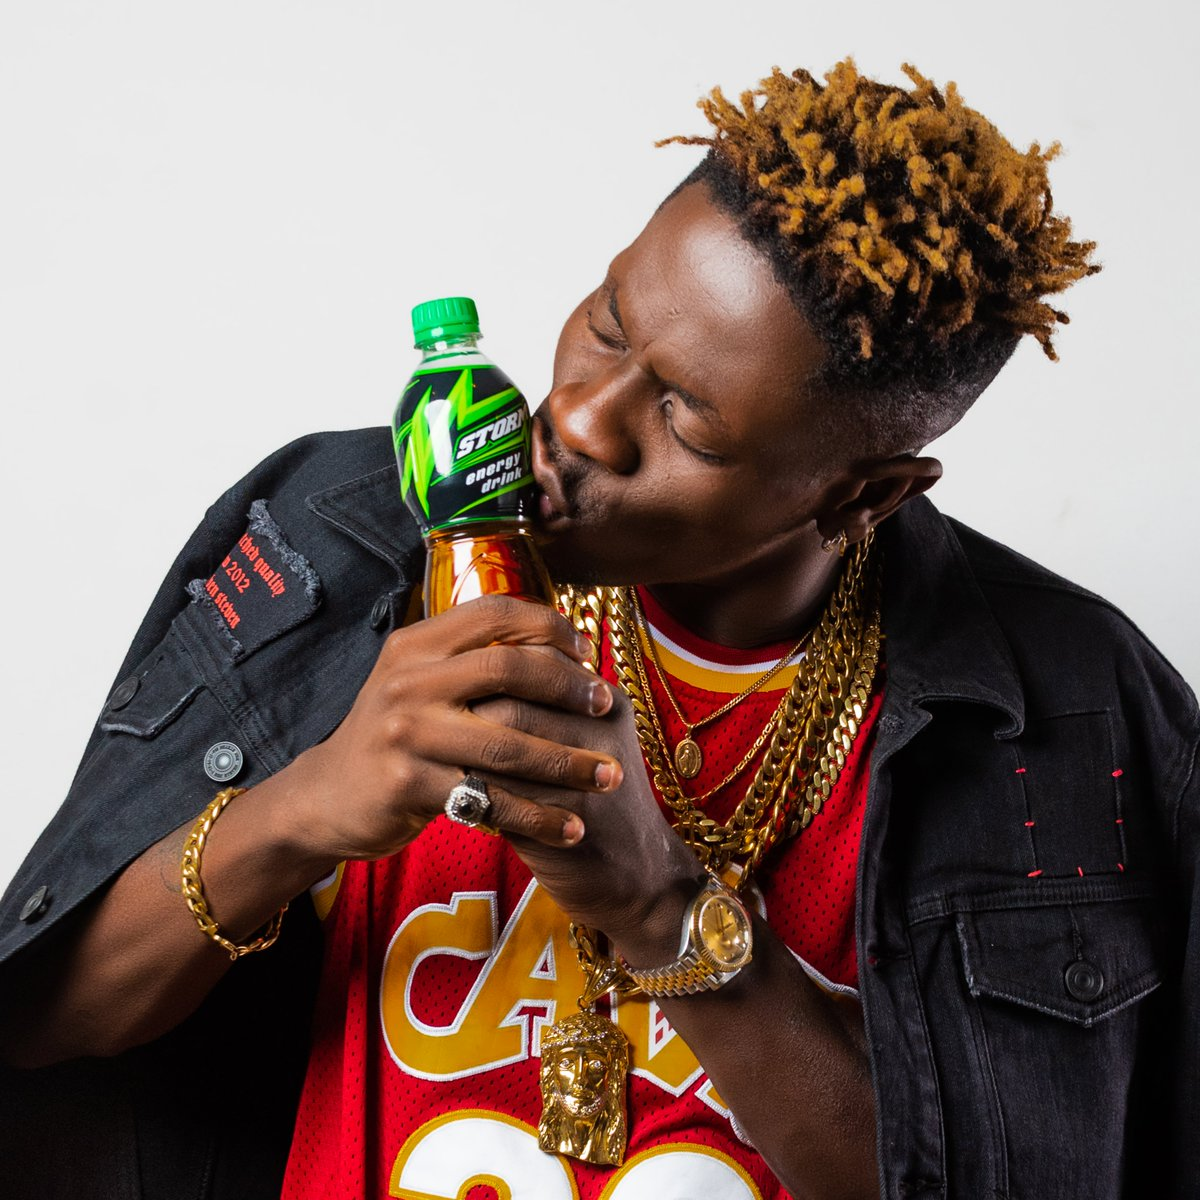 HAPPY BIRTHDAY TO THE AFRICAN DANCEHALL KING AND OUR BRAND AMBASSADOR FOR @stormenergydr. WE WISH YOU THE BEST AND MORE 🥳🙏. #Shattabration #Kasapreko #StormEnergyDrink